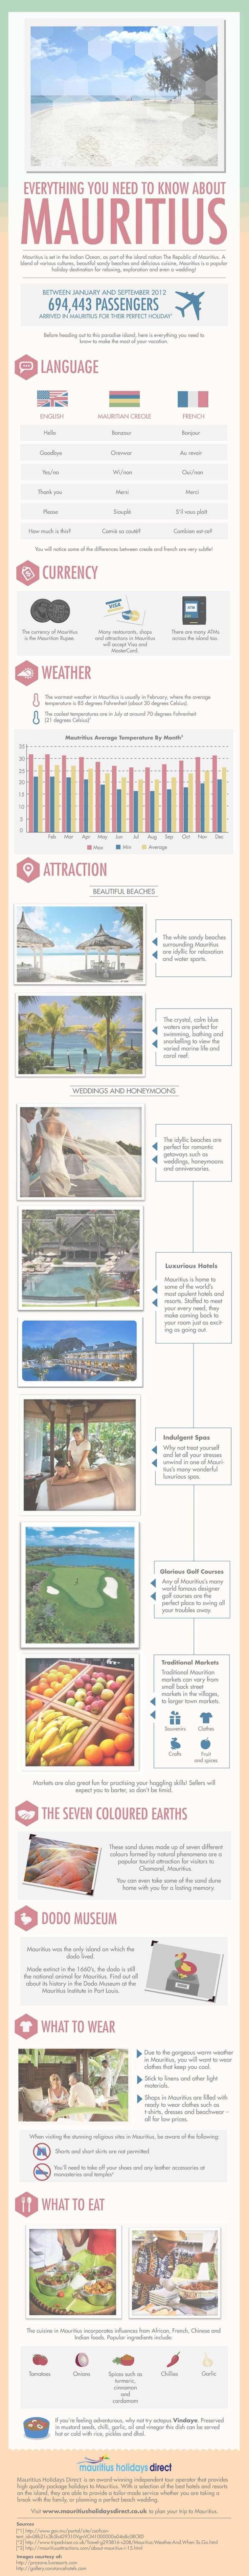 I cannot wait to go now! Everything You Need To Know About Mauritius #Infographic #Mauritius #Travel